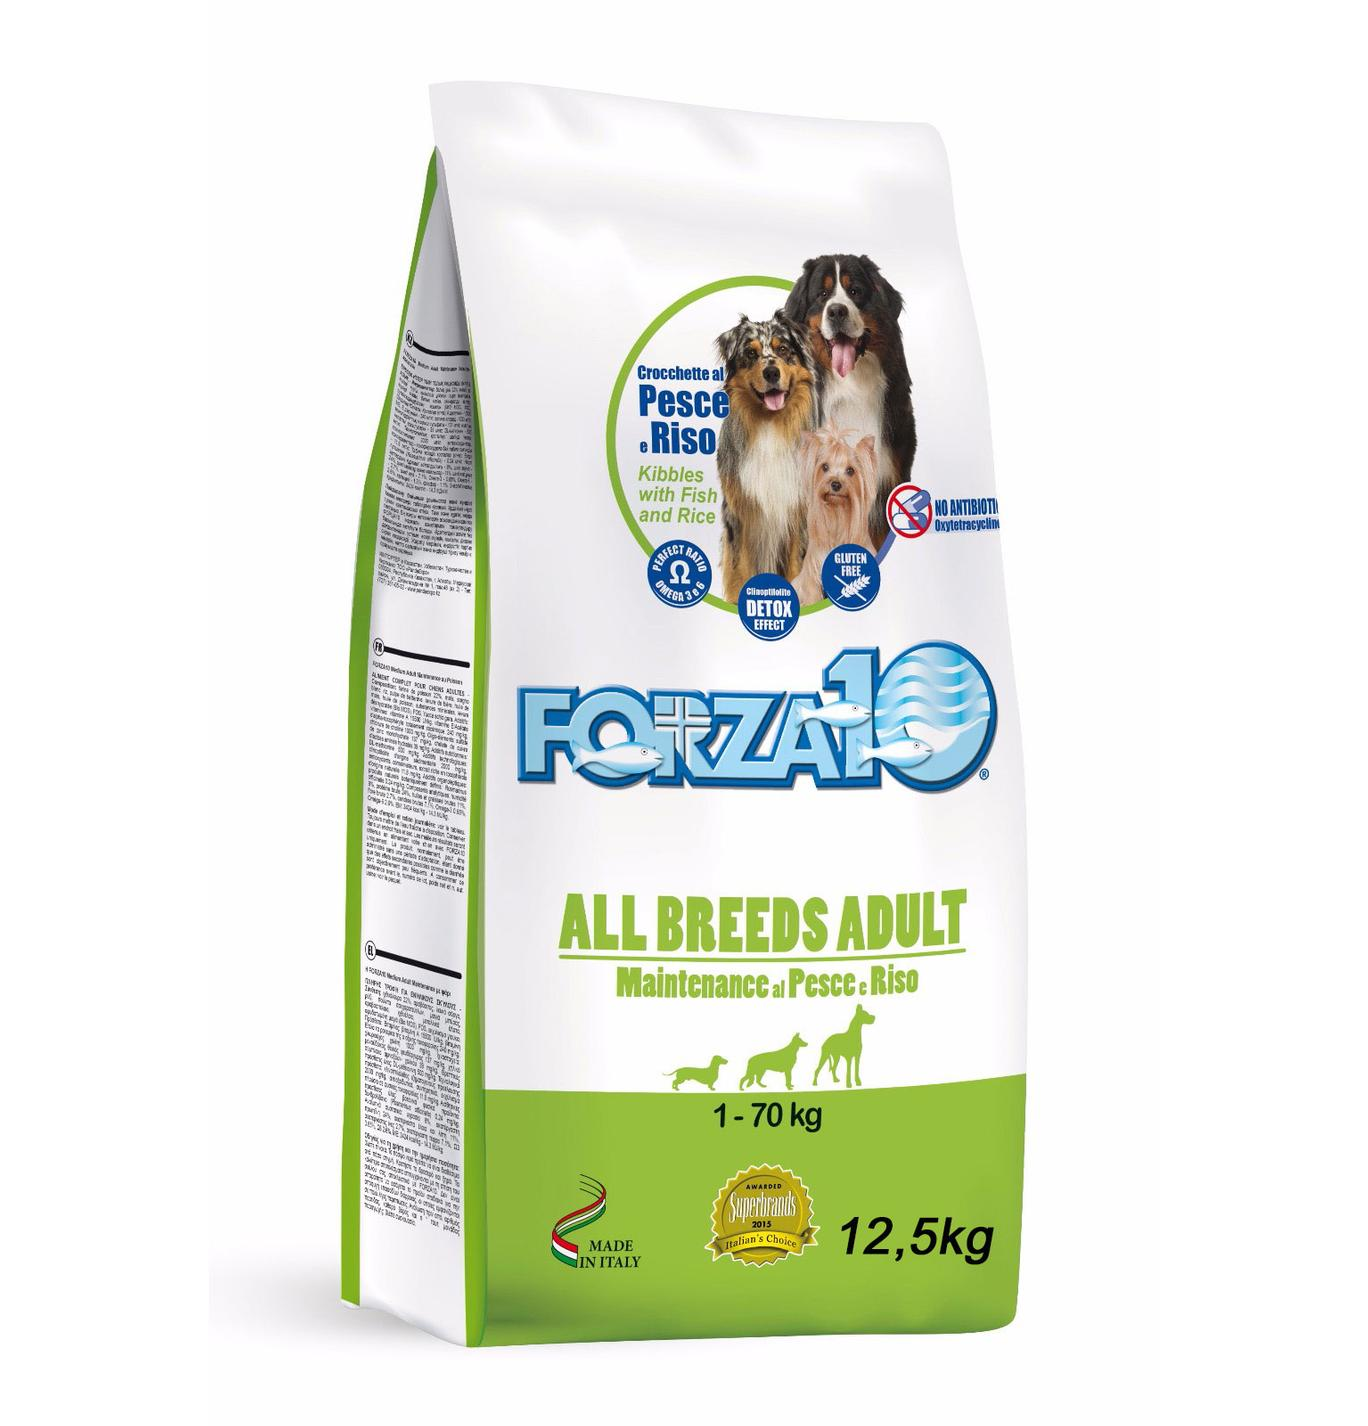 FORZA10 All Breeds Adult Maintenance al Pesce e Riso kg12,5